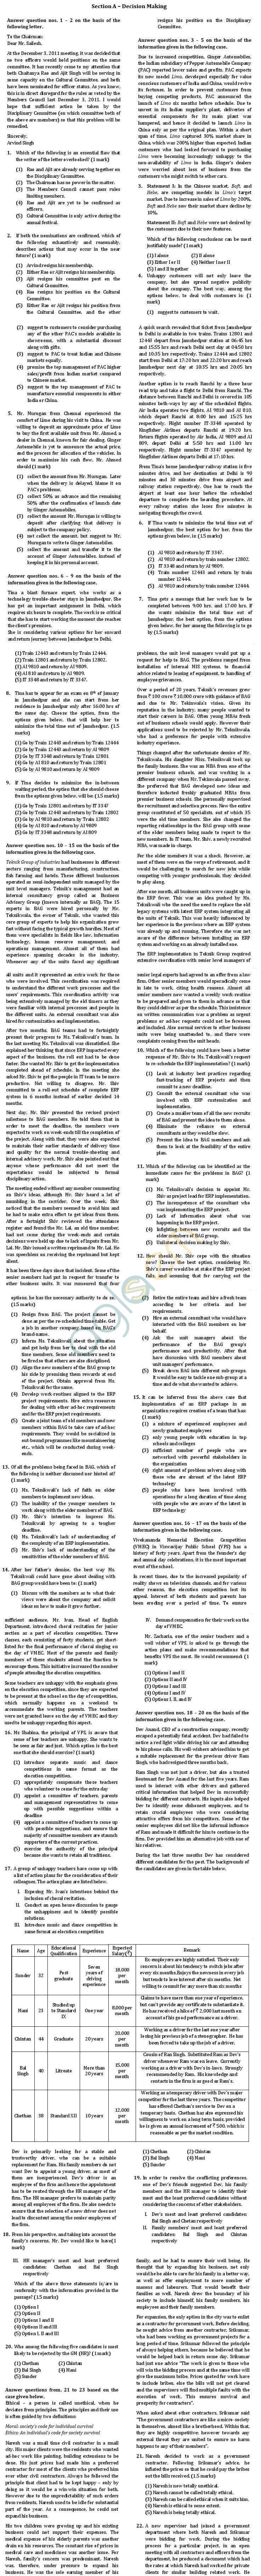 XAT 2012 Question Paper with Solutions